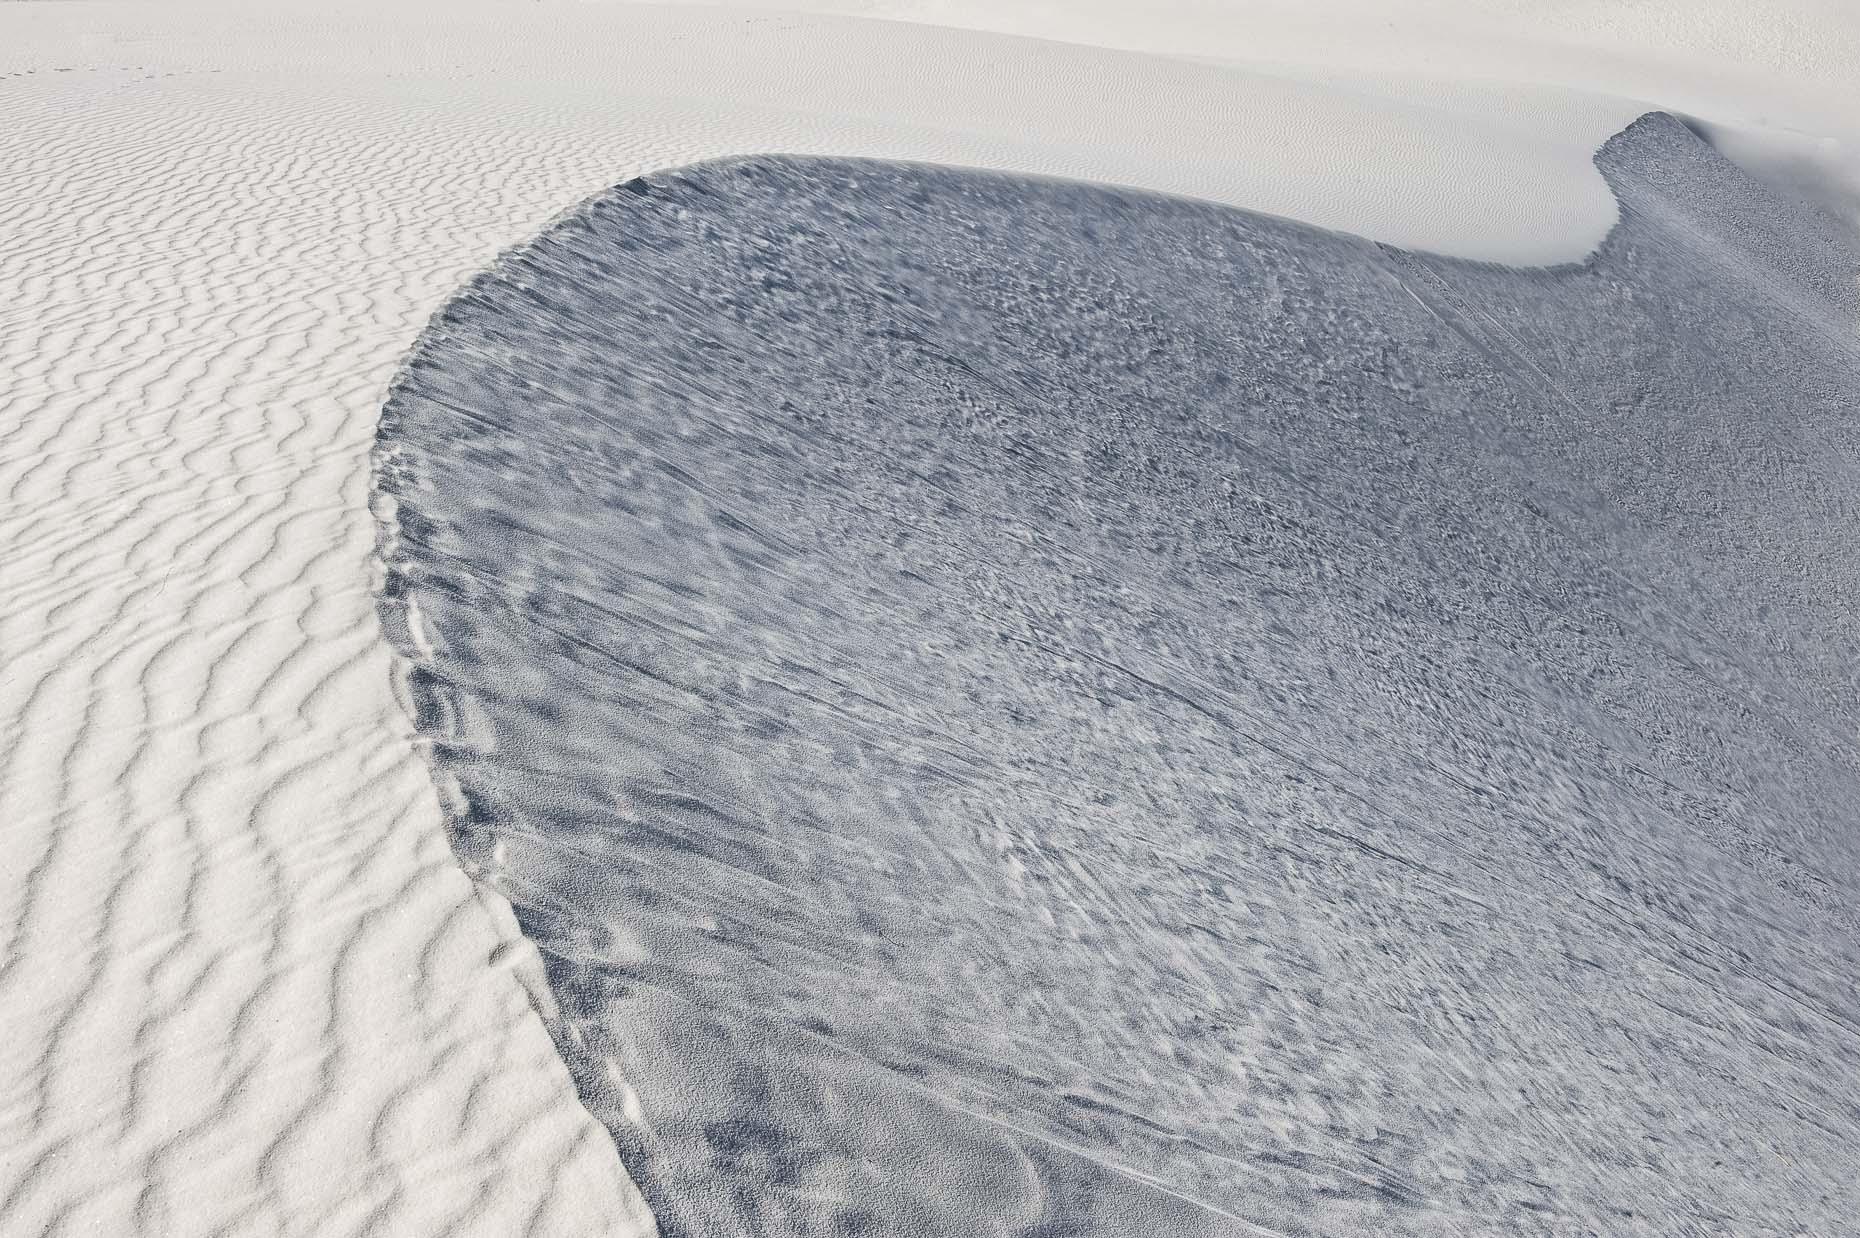 Landscape from White Sands desert, New Mexico.